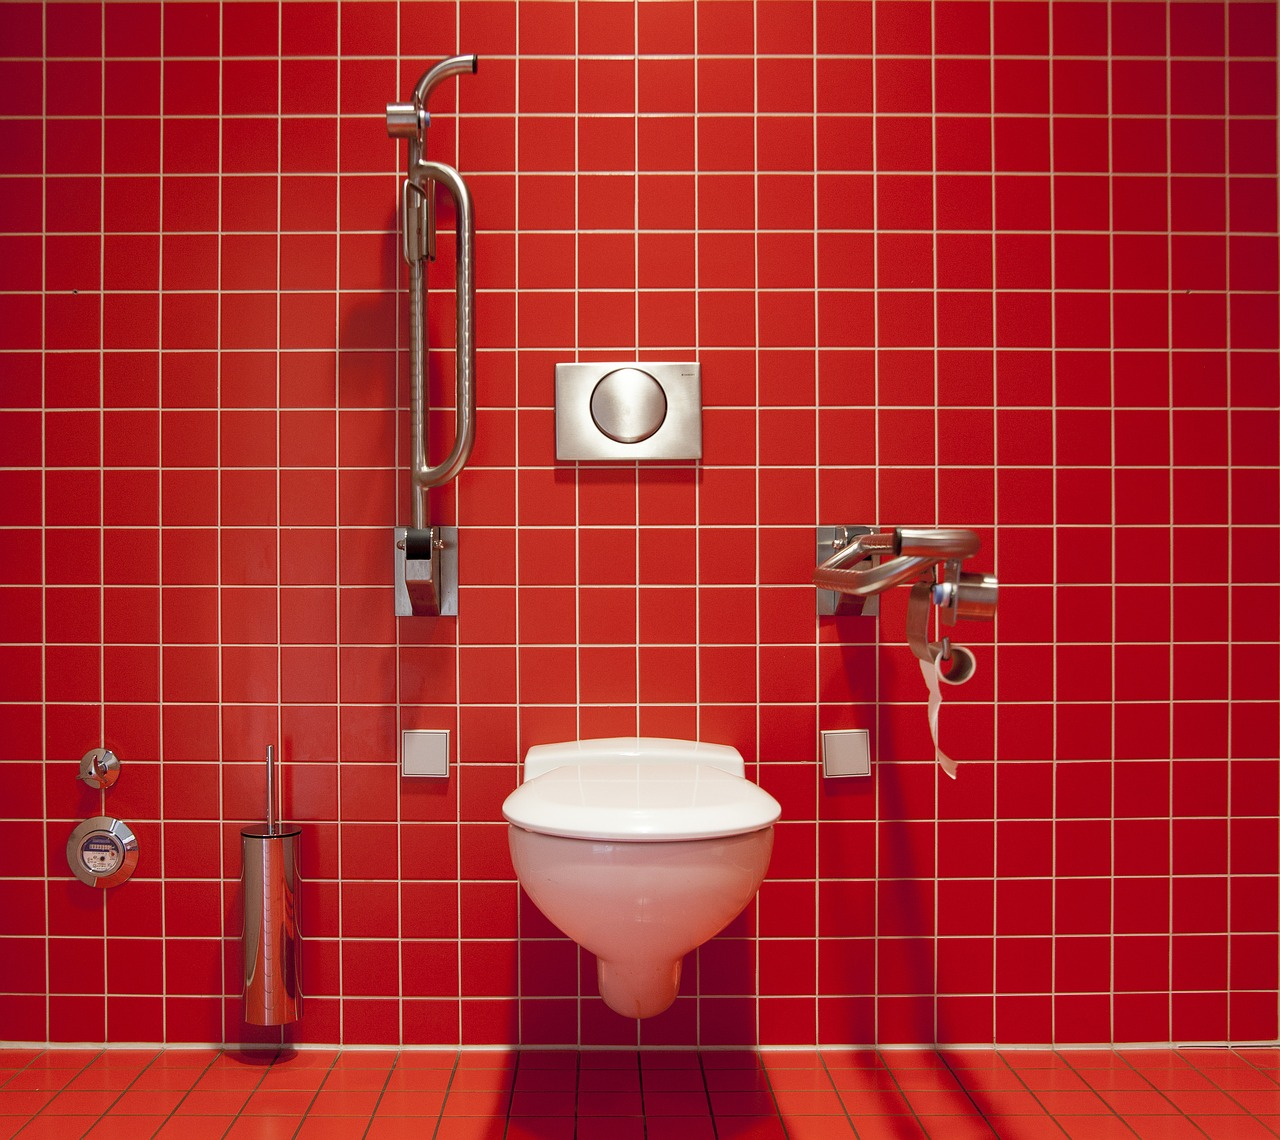 On Toilet Types: What Are The Different Types Of Toilets? | My ...